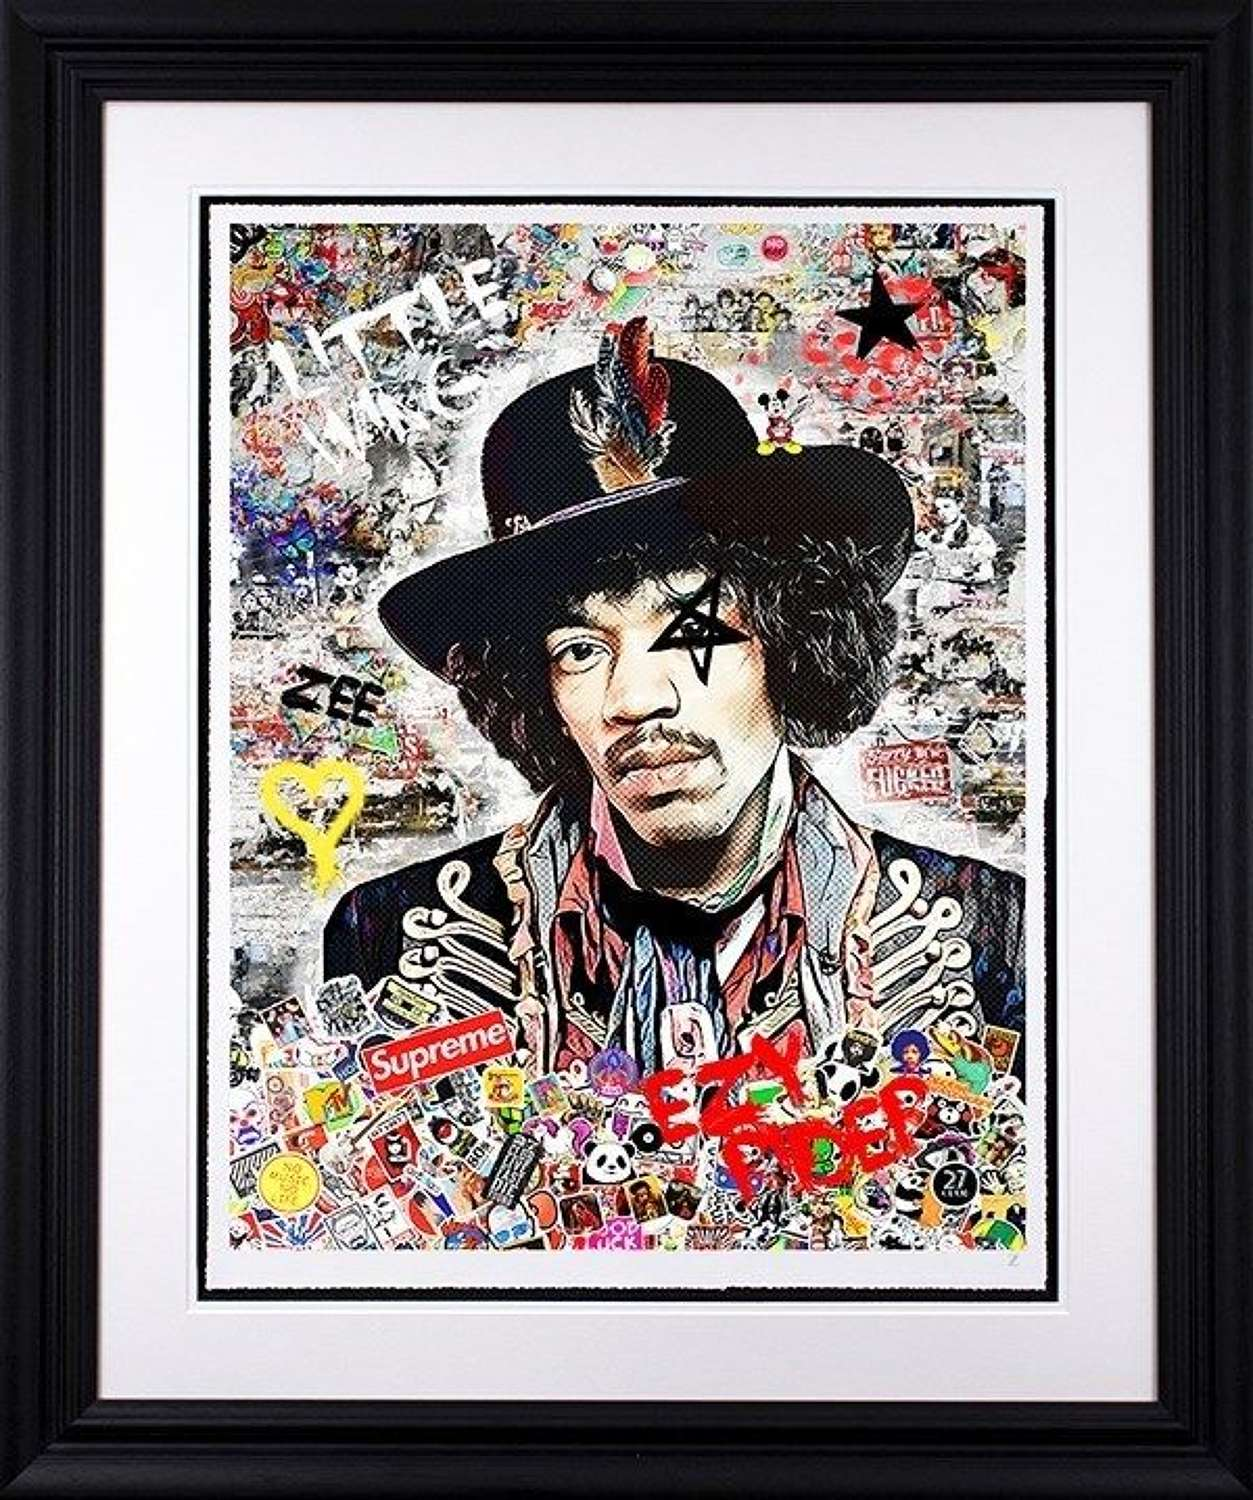 EZY Rider - Framed Art Print by Zee